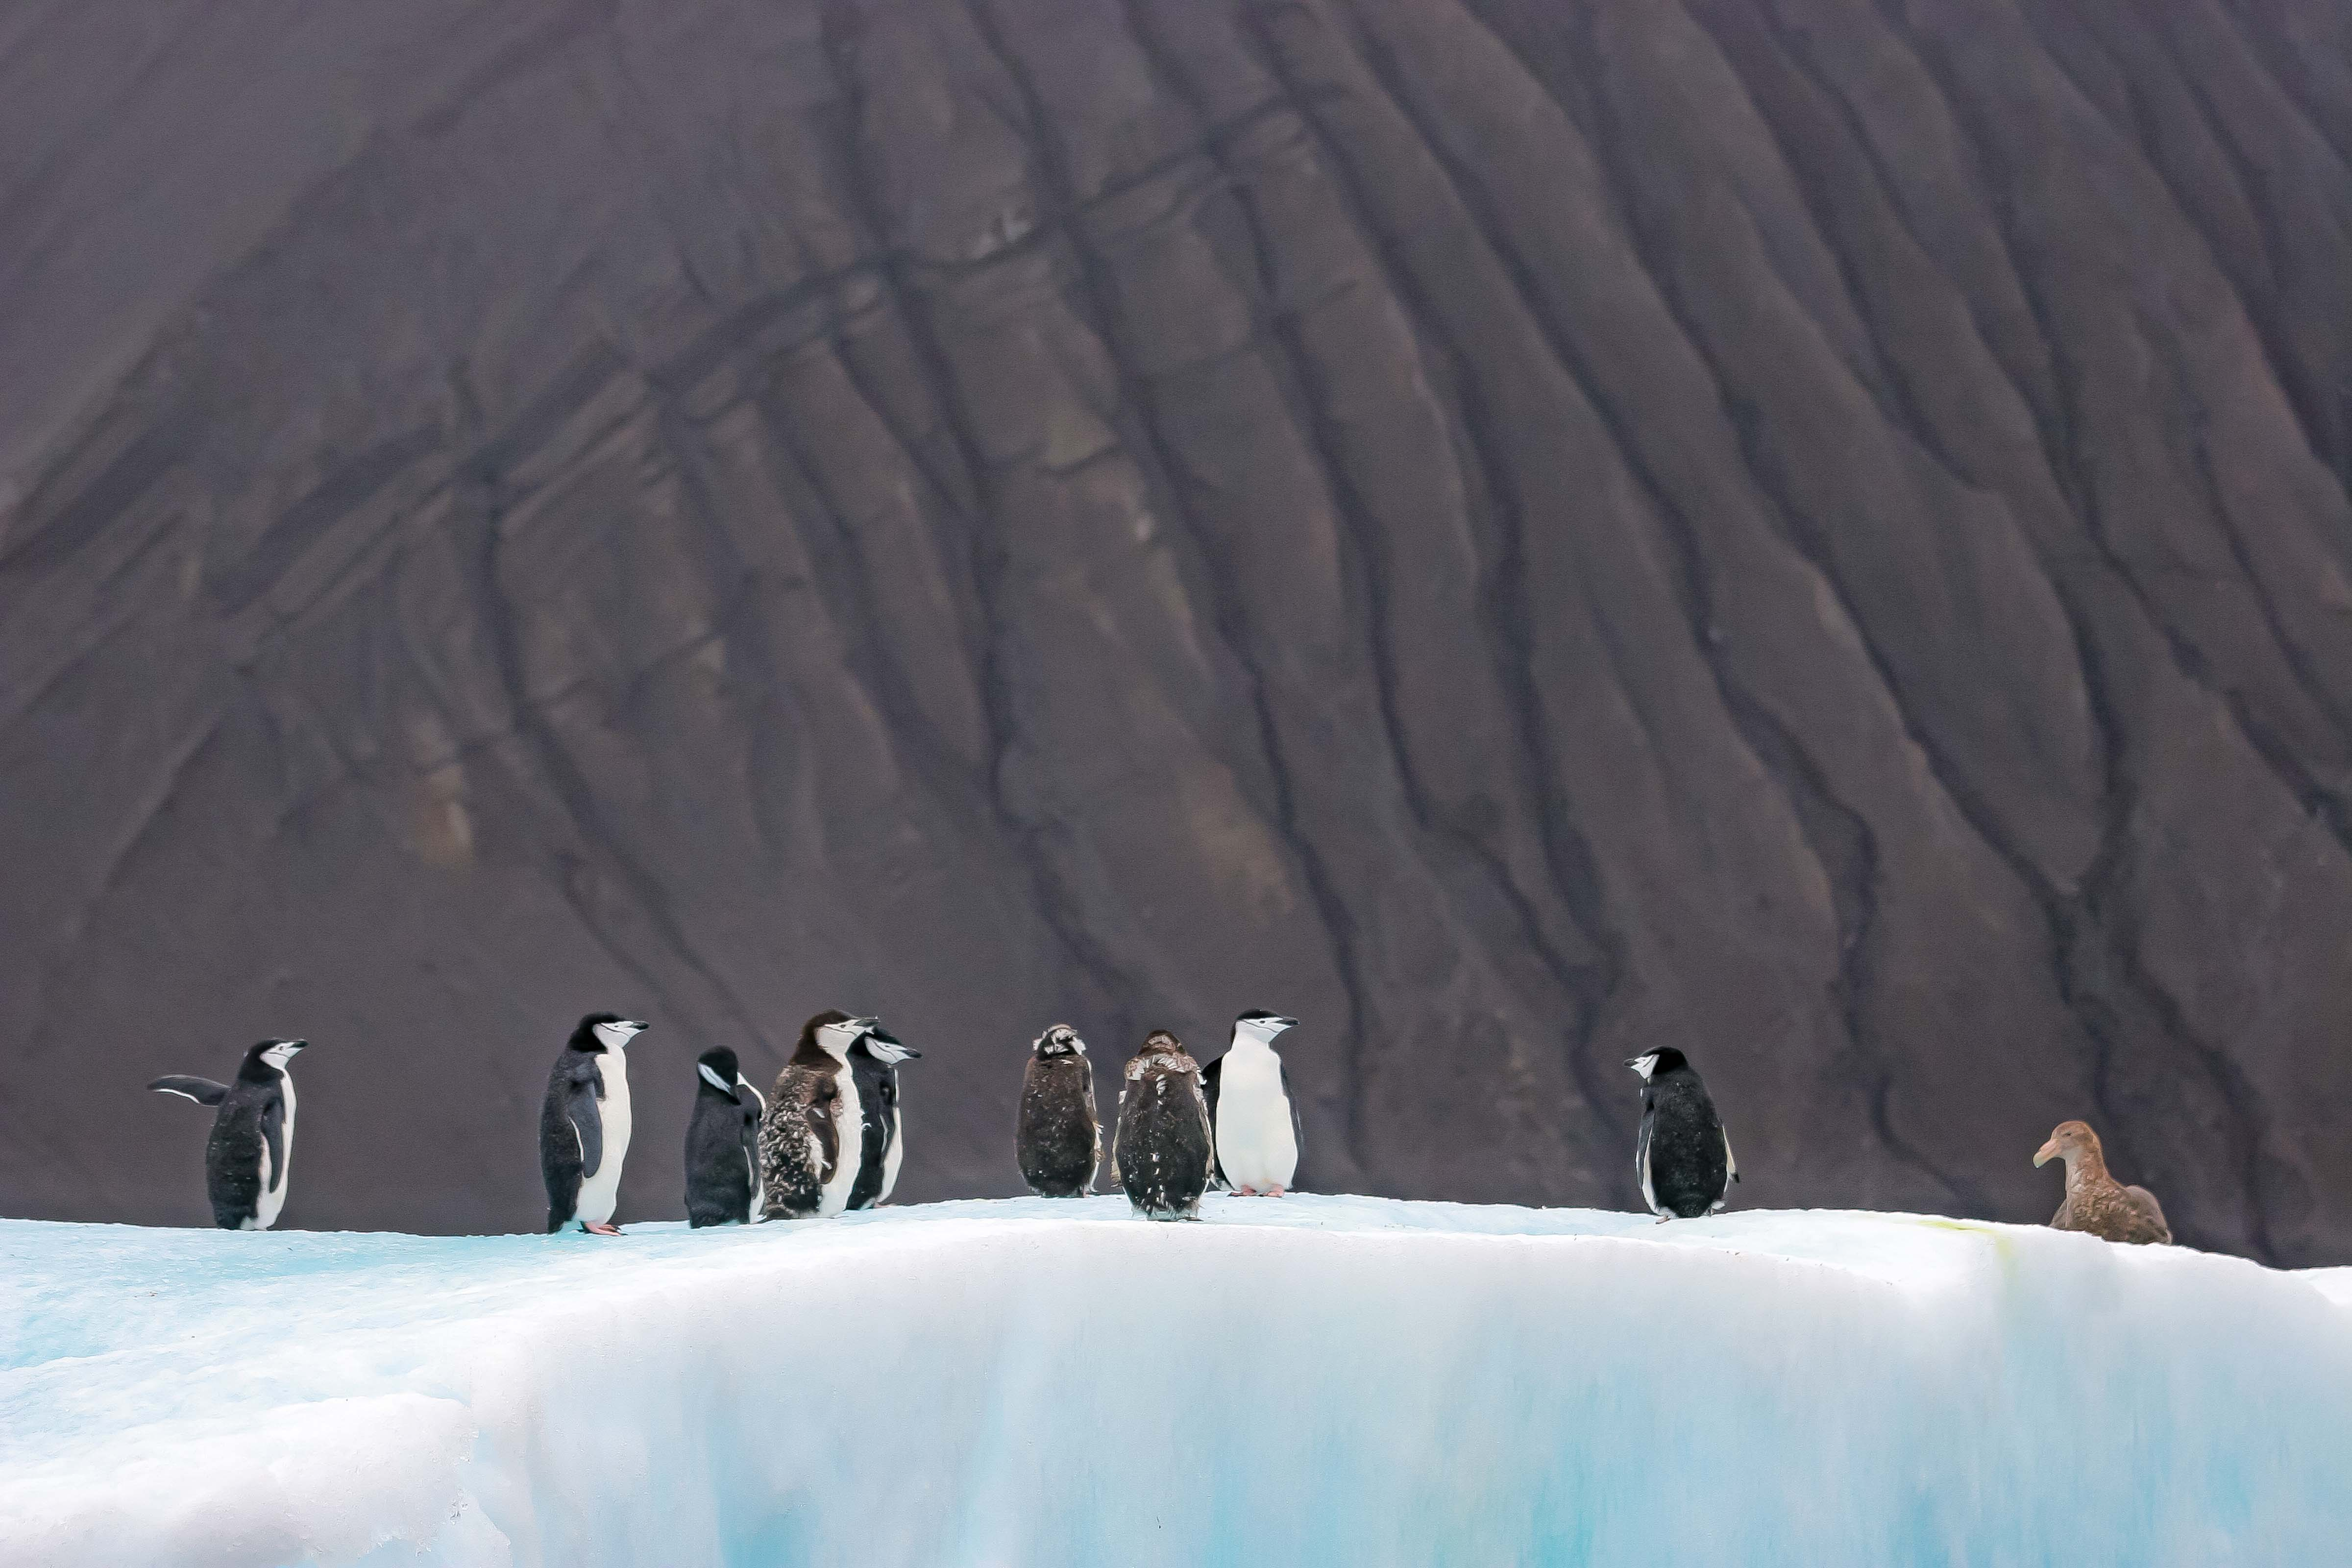 South Sandwich Is, Penguins On Iceberg With Mountain Behind, 2006